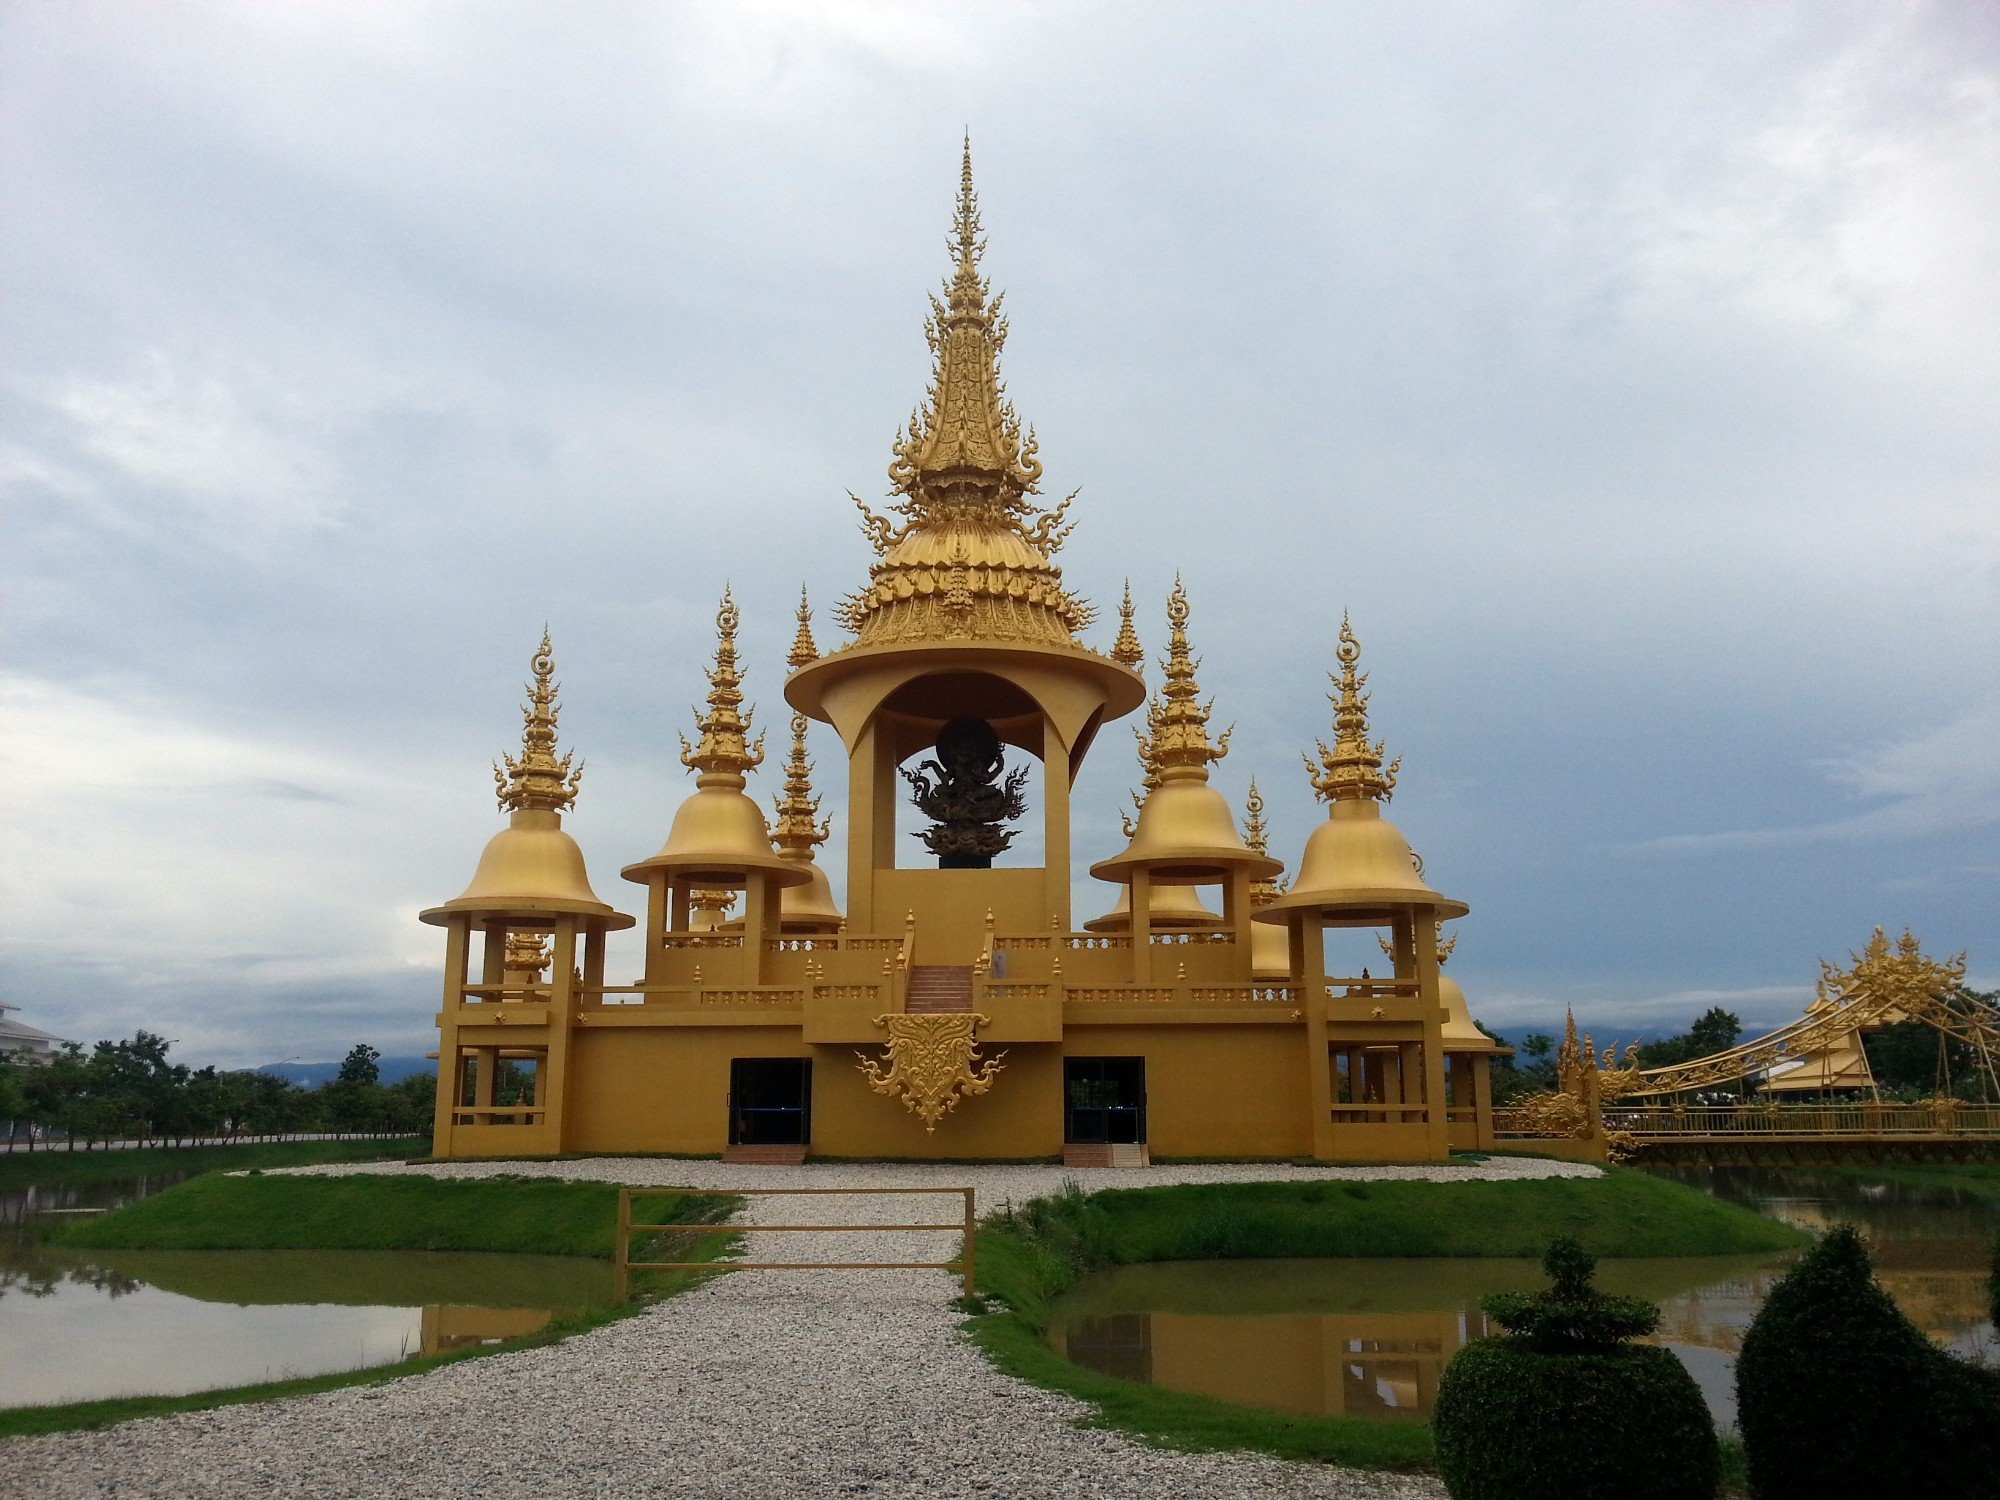 Golden Pagoda at the White Temple